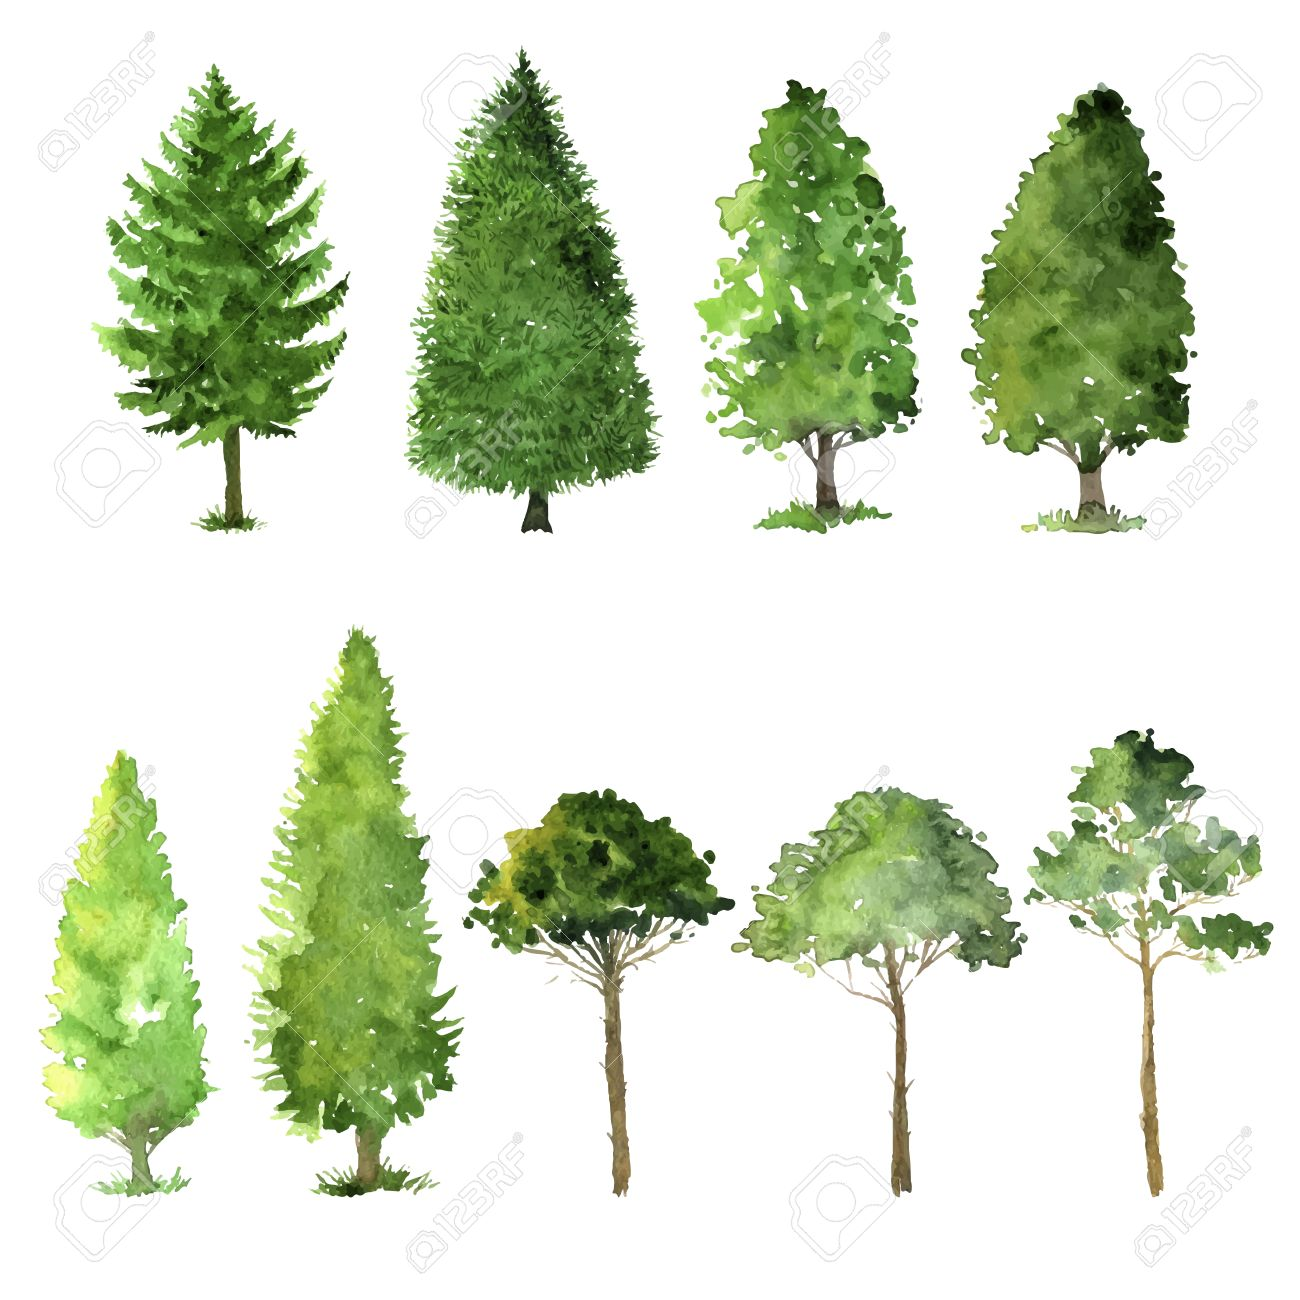 1300x1300 Set Of Trees Drawing By Watercolor, Conifers And Deciduous, Green